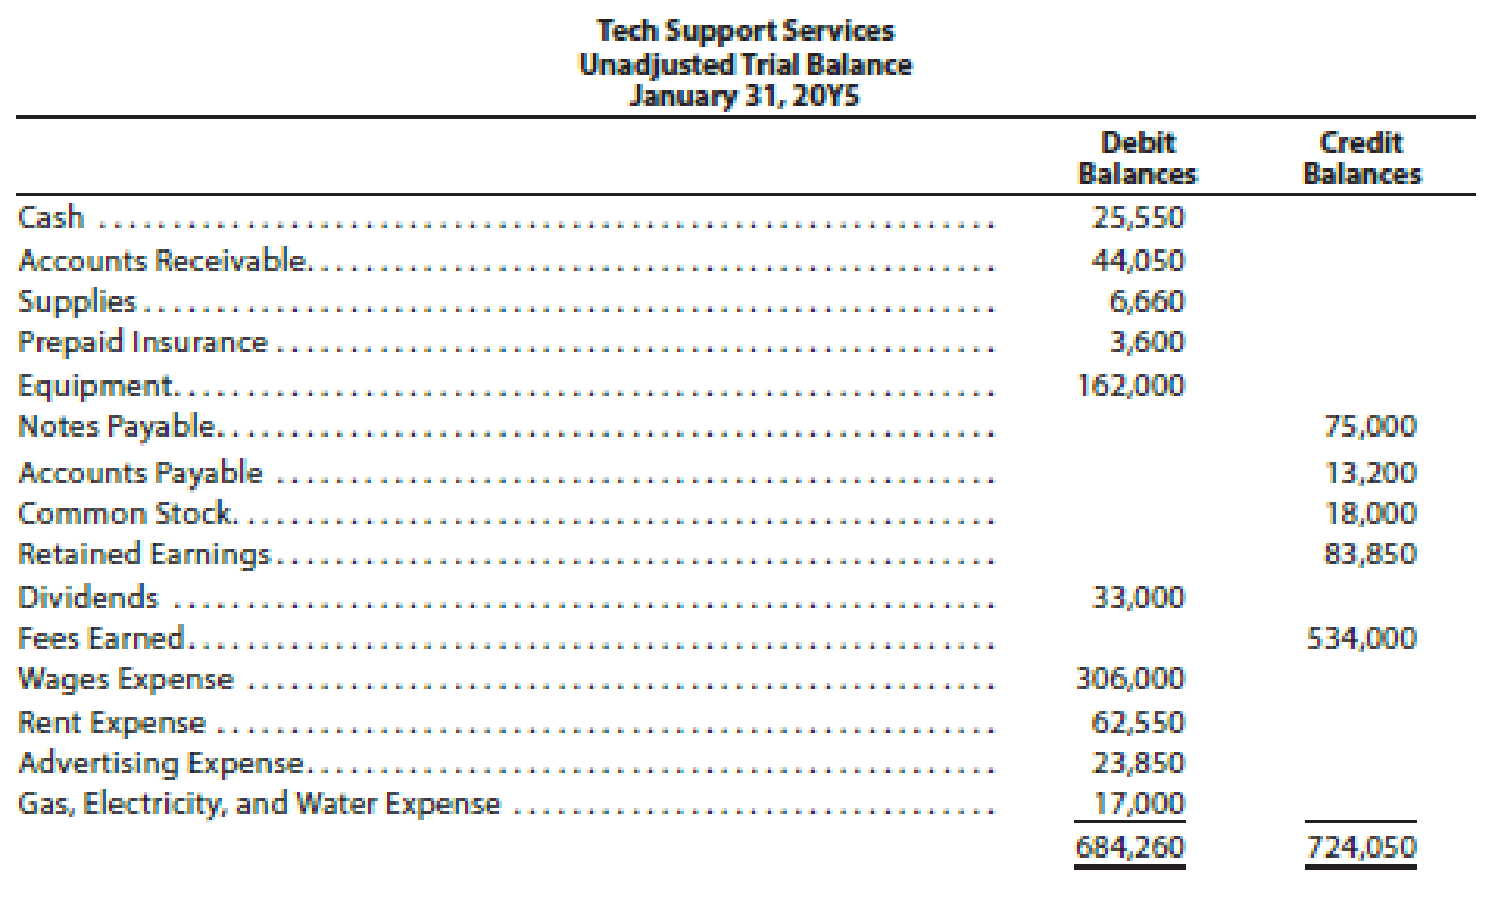 Chapter 2, Problem 5PB, Corrected trial balance Tech Support Services has the following unadjusted trial balance as of